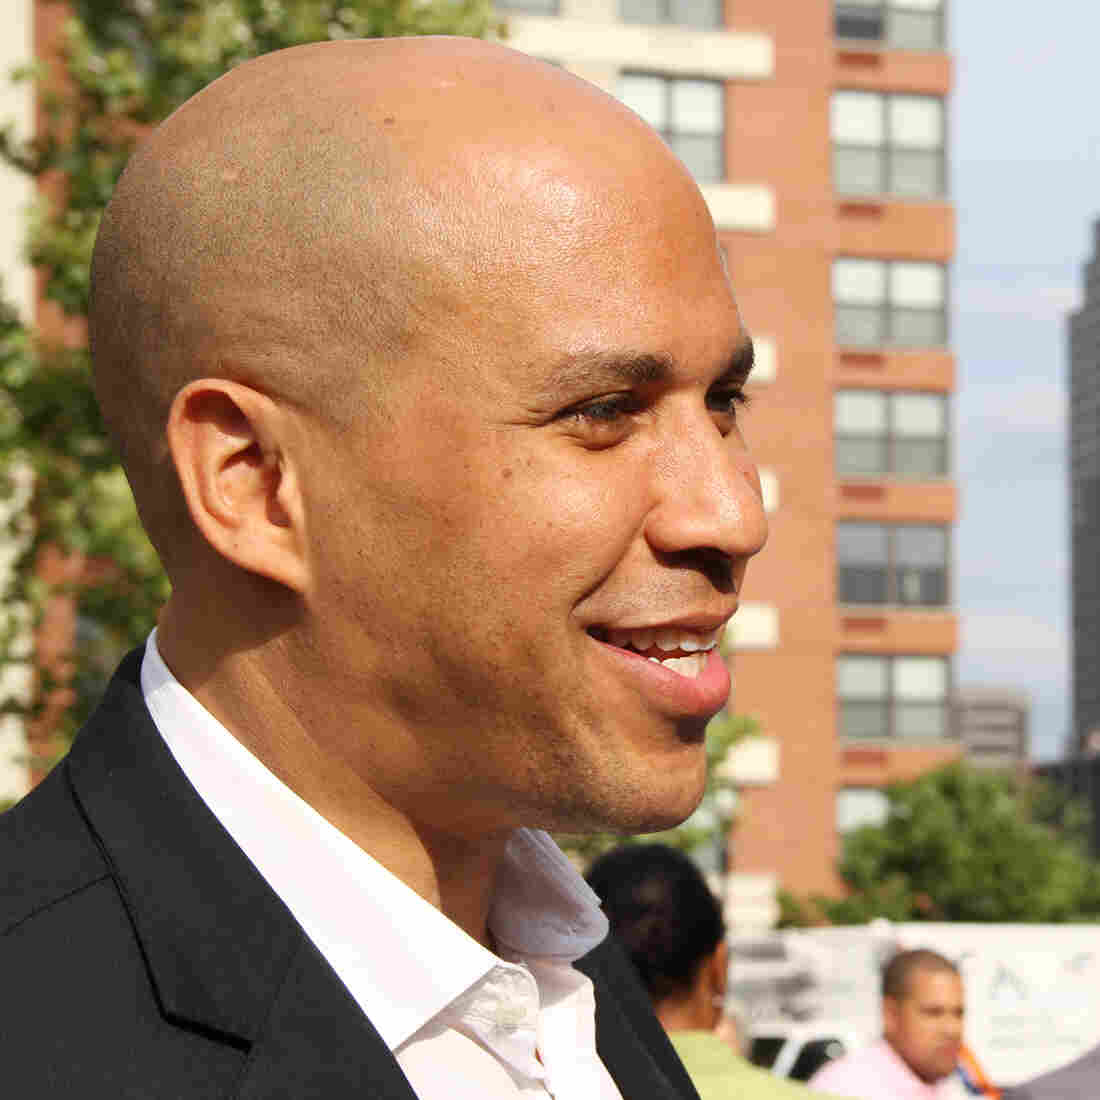 Cory Booker: Supermayor Or Self-Promoter?